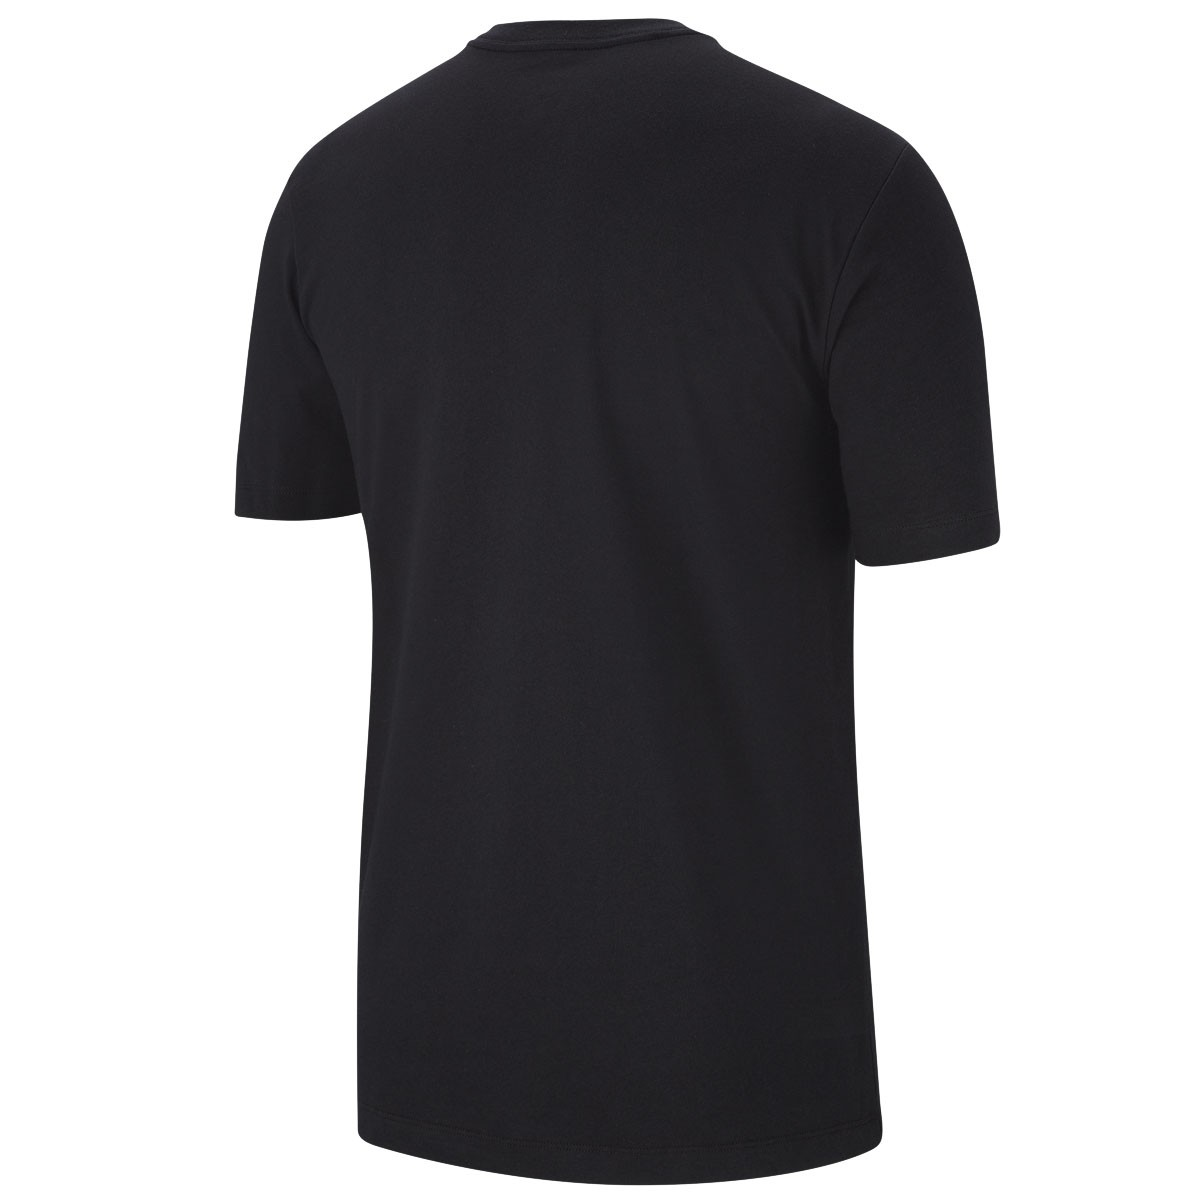 Nike T-Shirt Dri-fit 'Jam' BQ3601-010